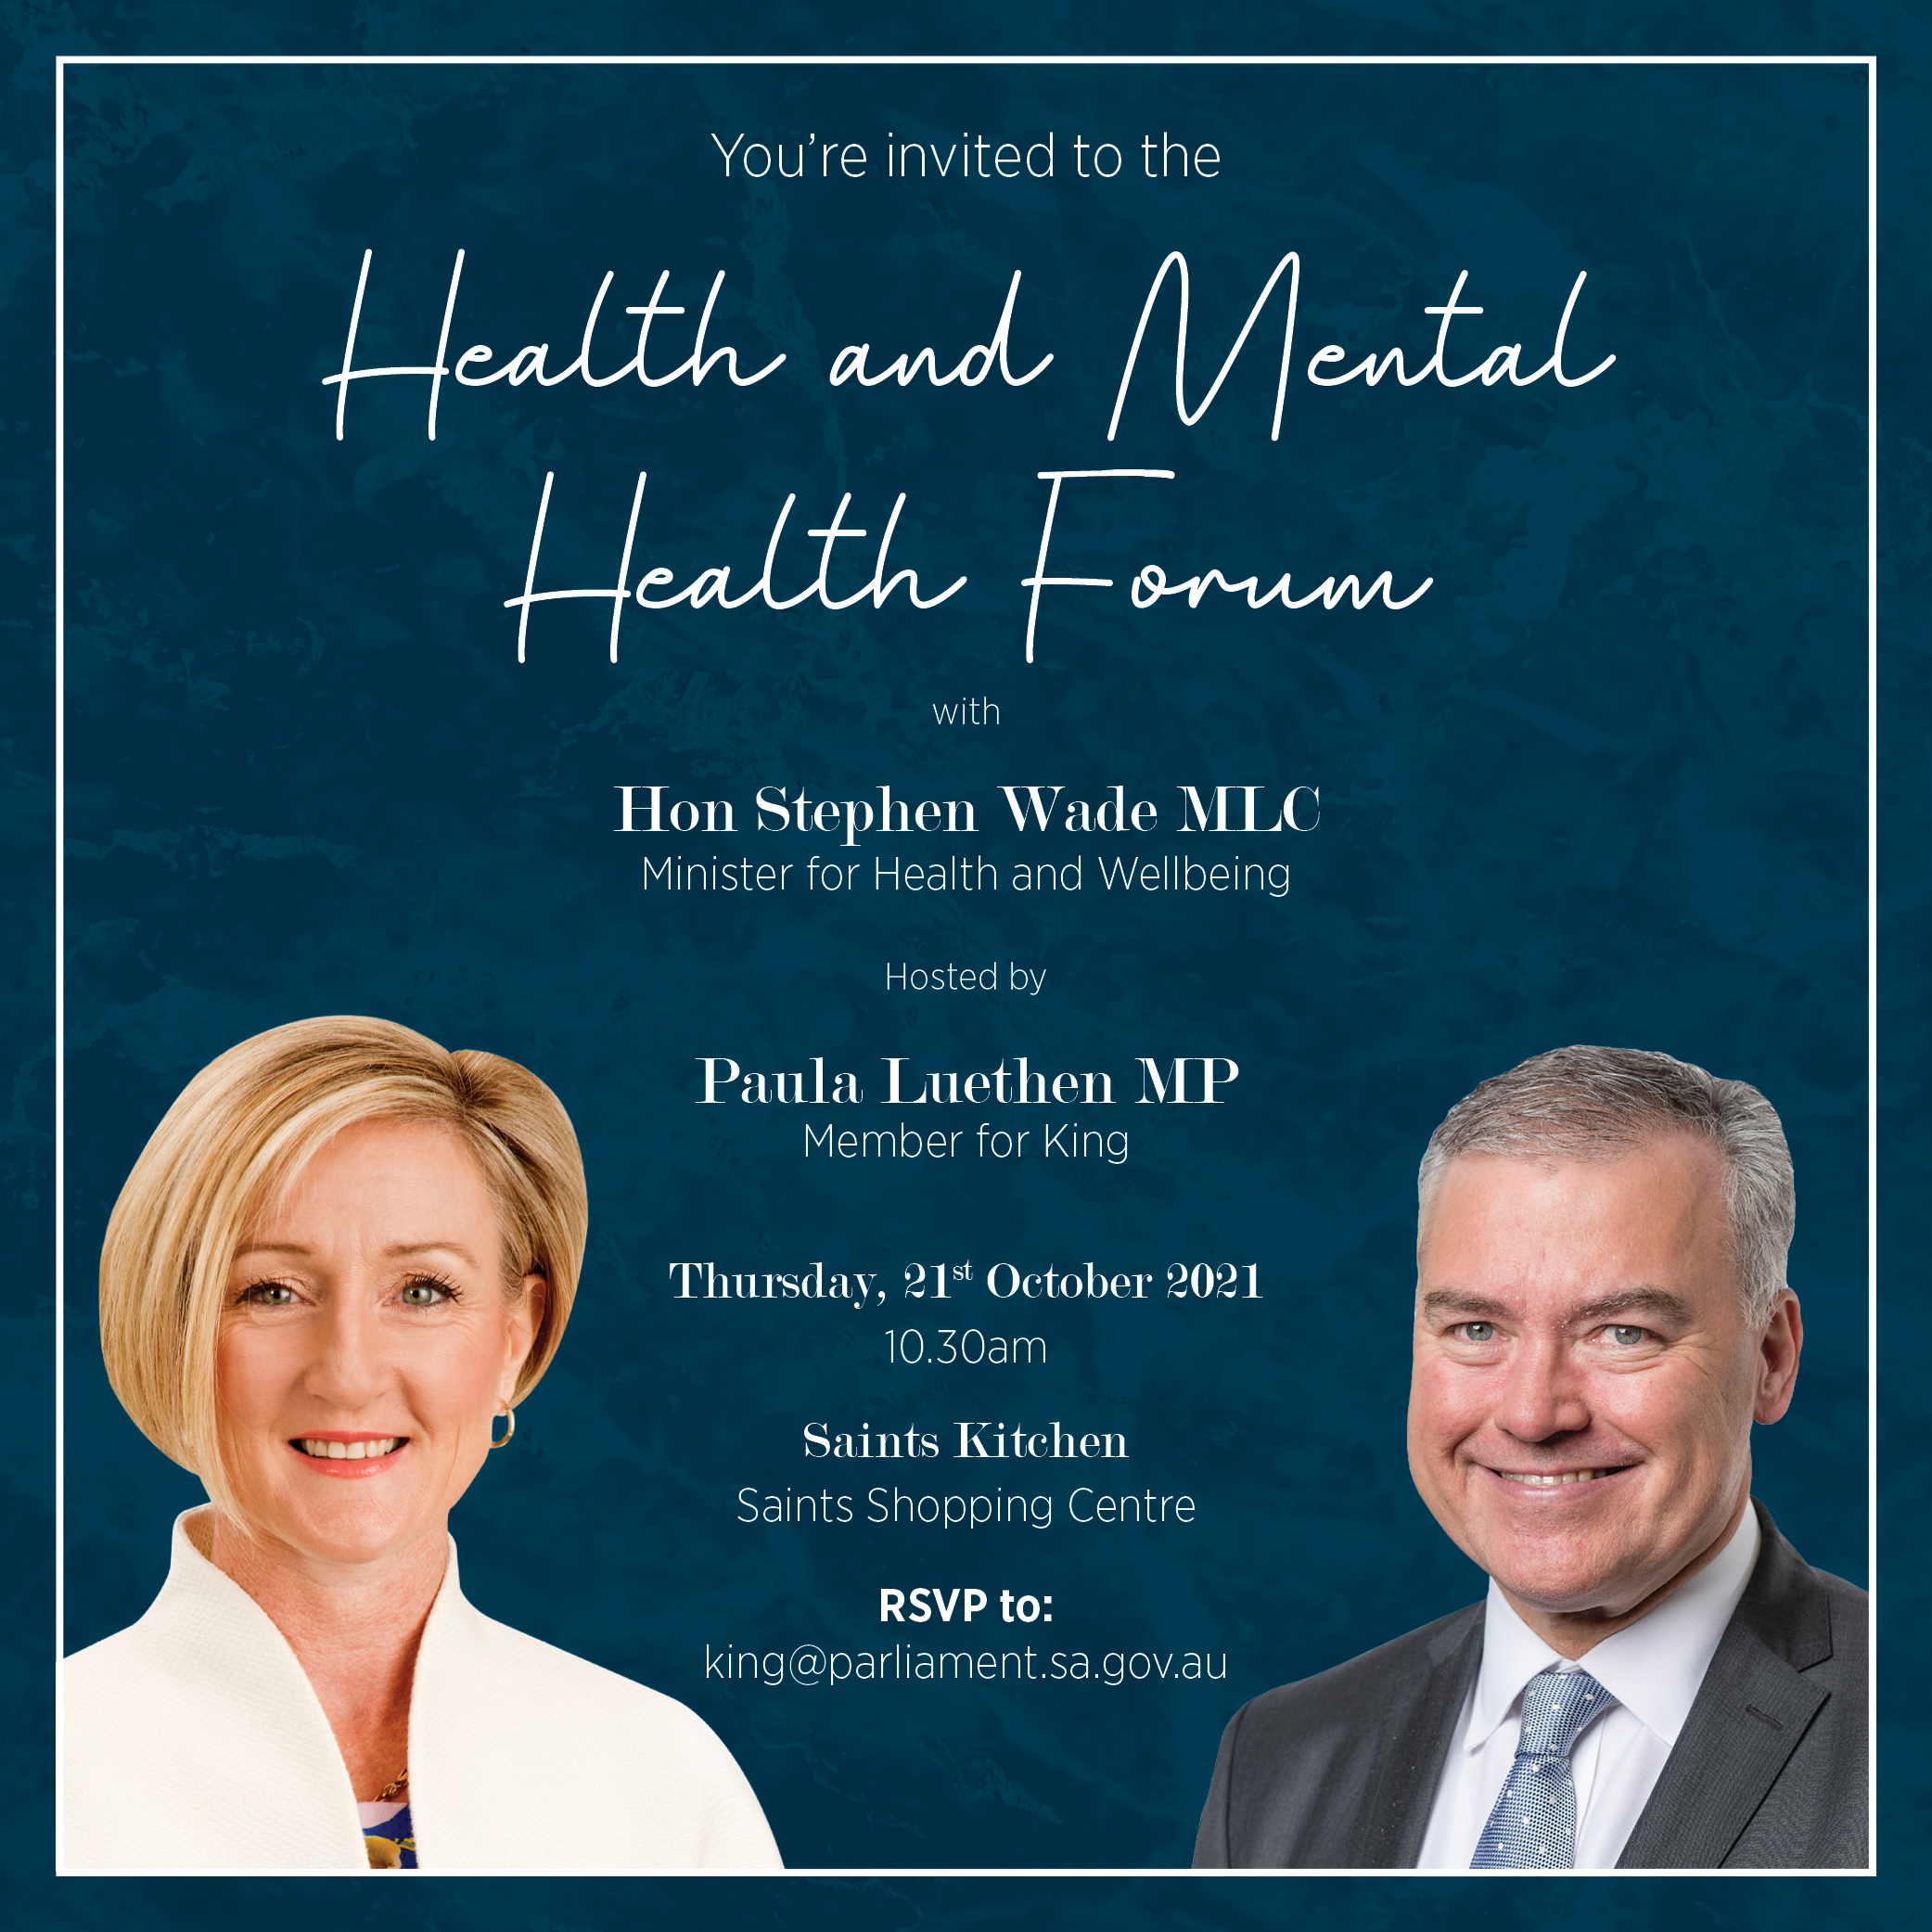 Health and Mental Health Forum with Hon Stephen Wade MLC, Minister for Health and Wellbeing